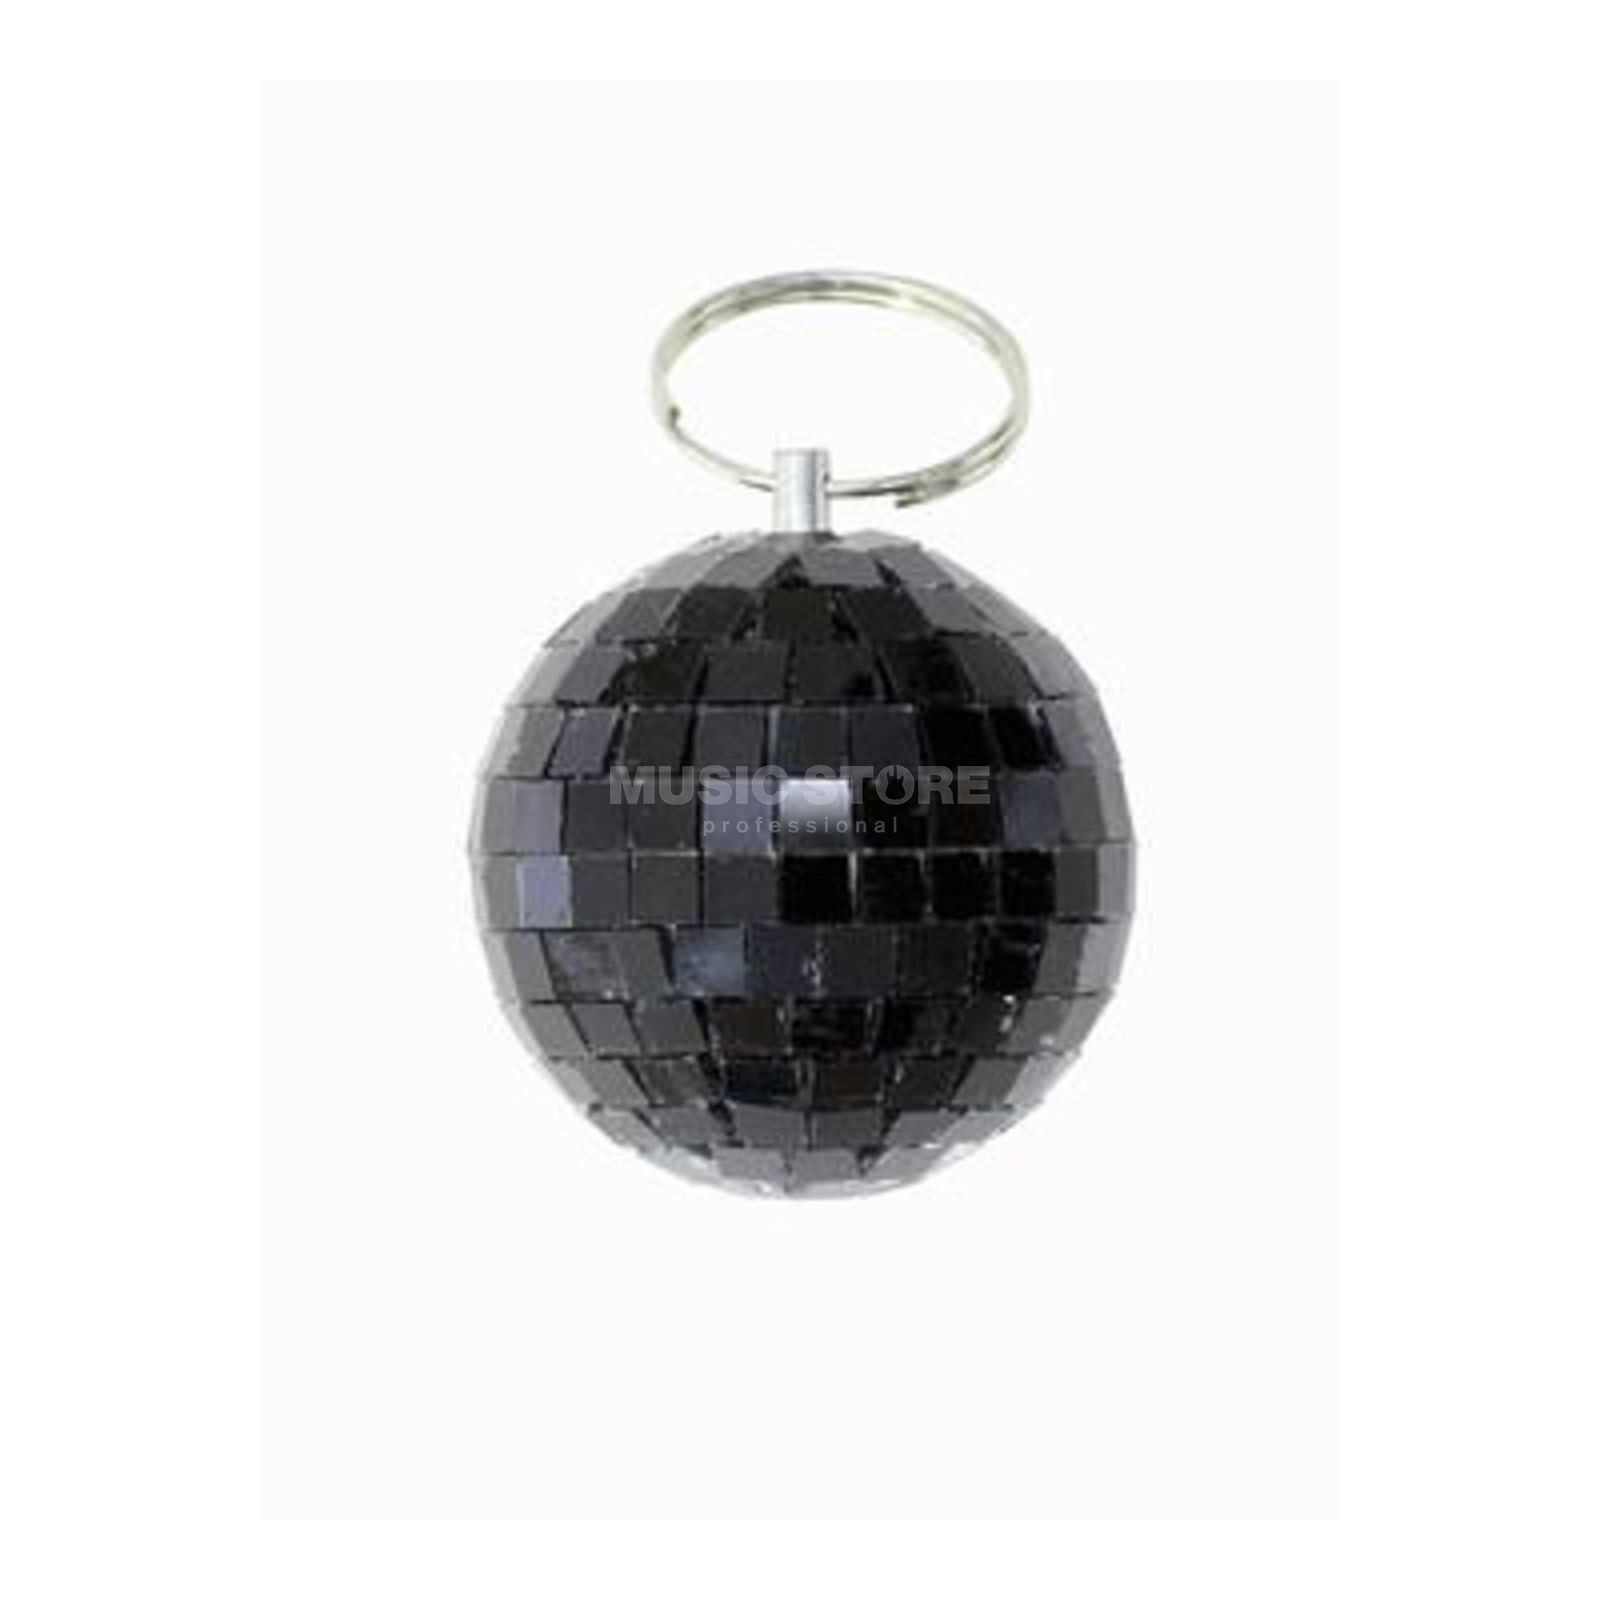 Eurolite Mirror Ball5cm Black 5mm  Produktbillede